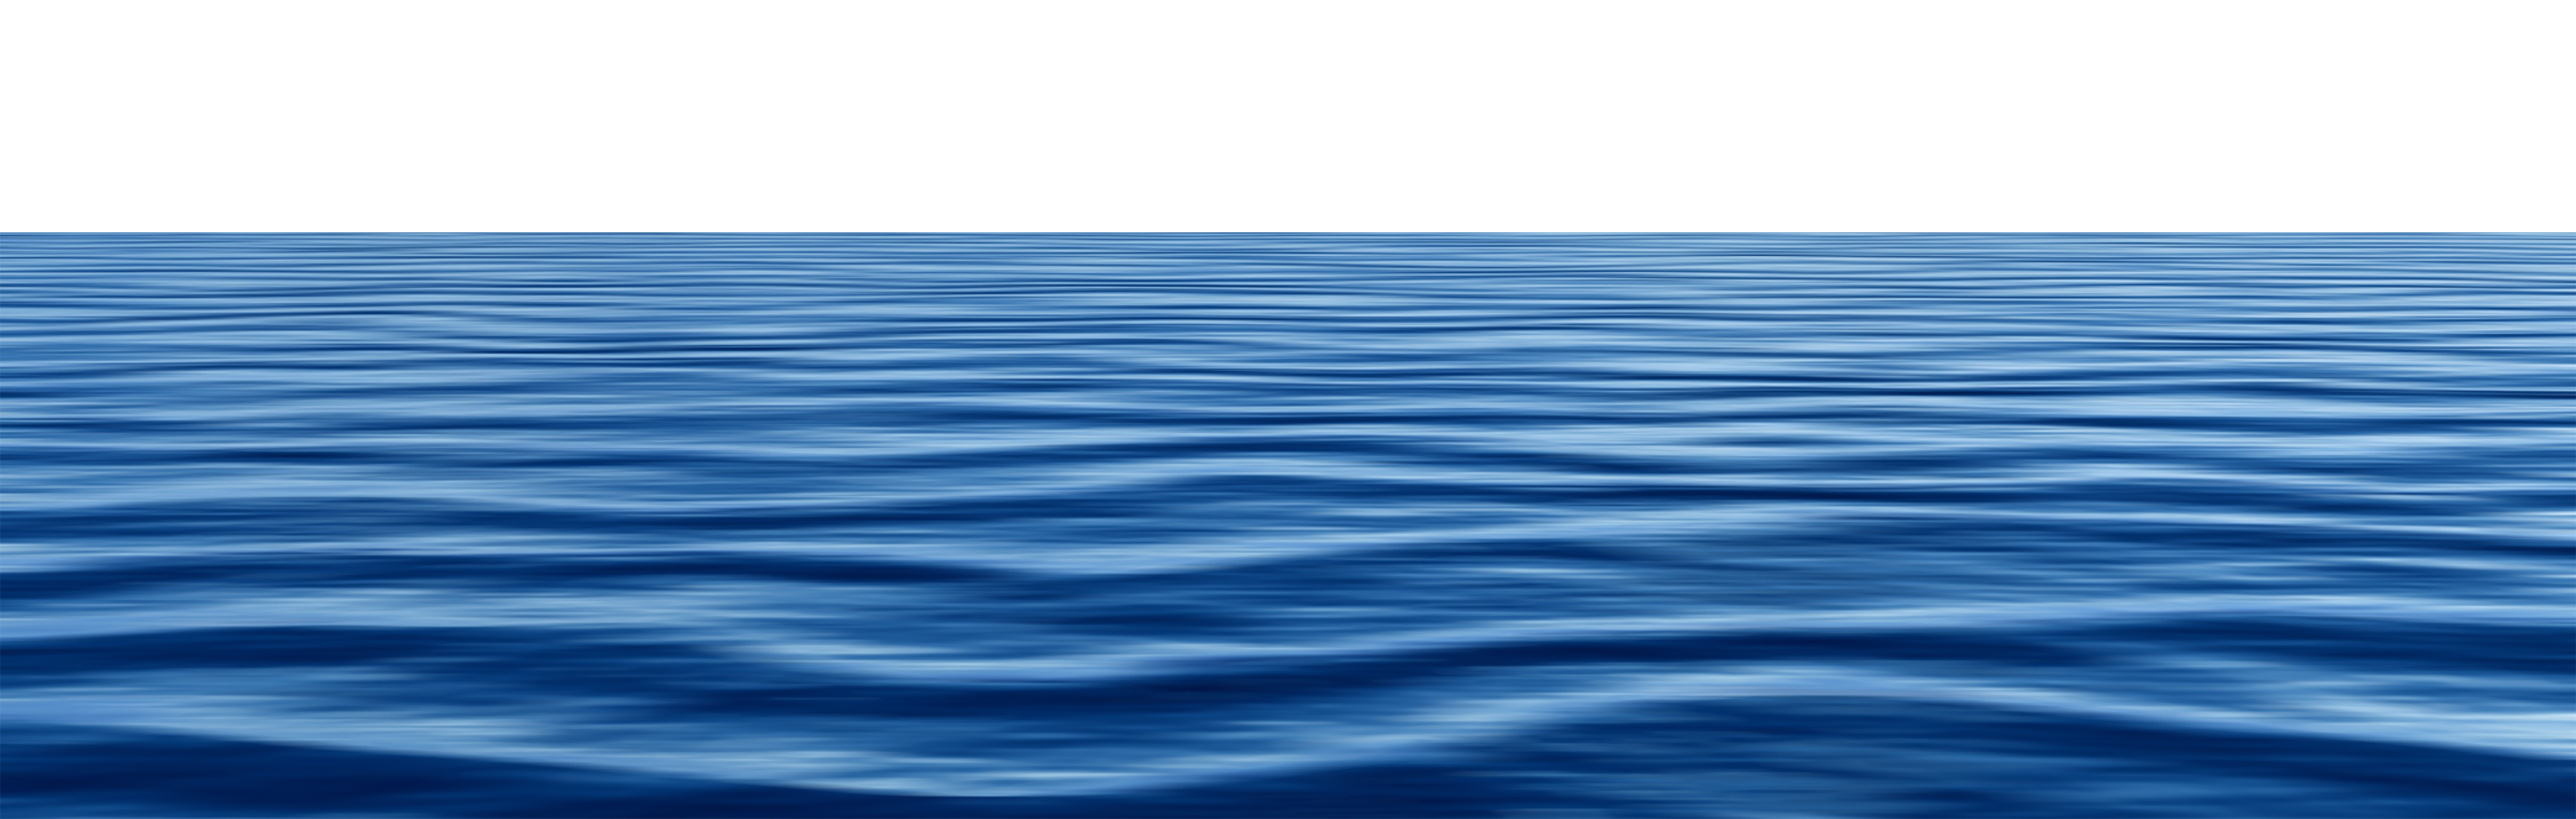 Blue sea ground png clipart picture design pinterest for Ocean ground